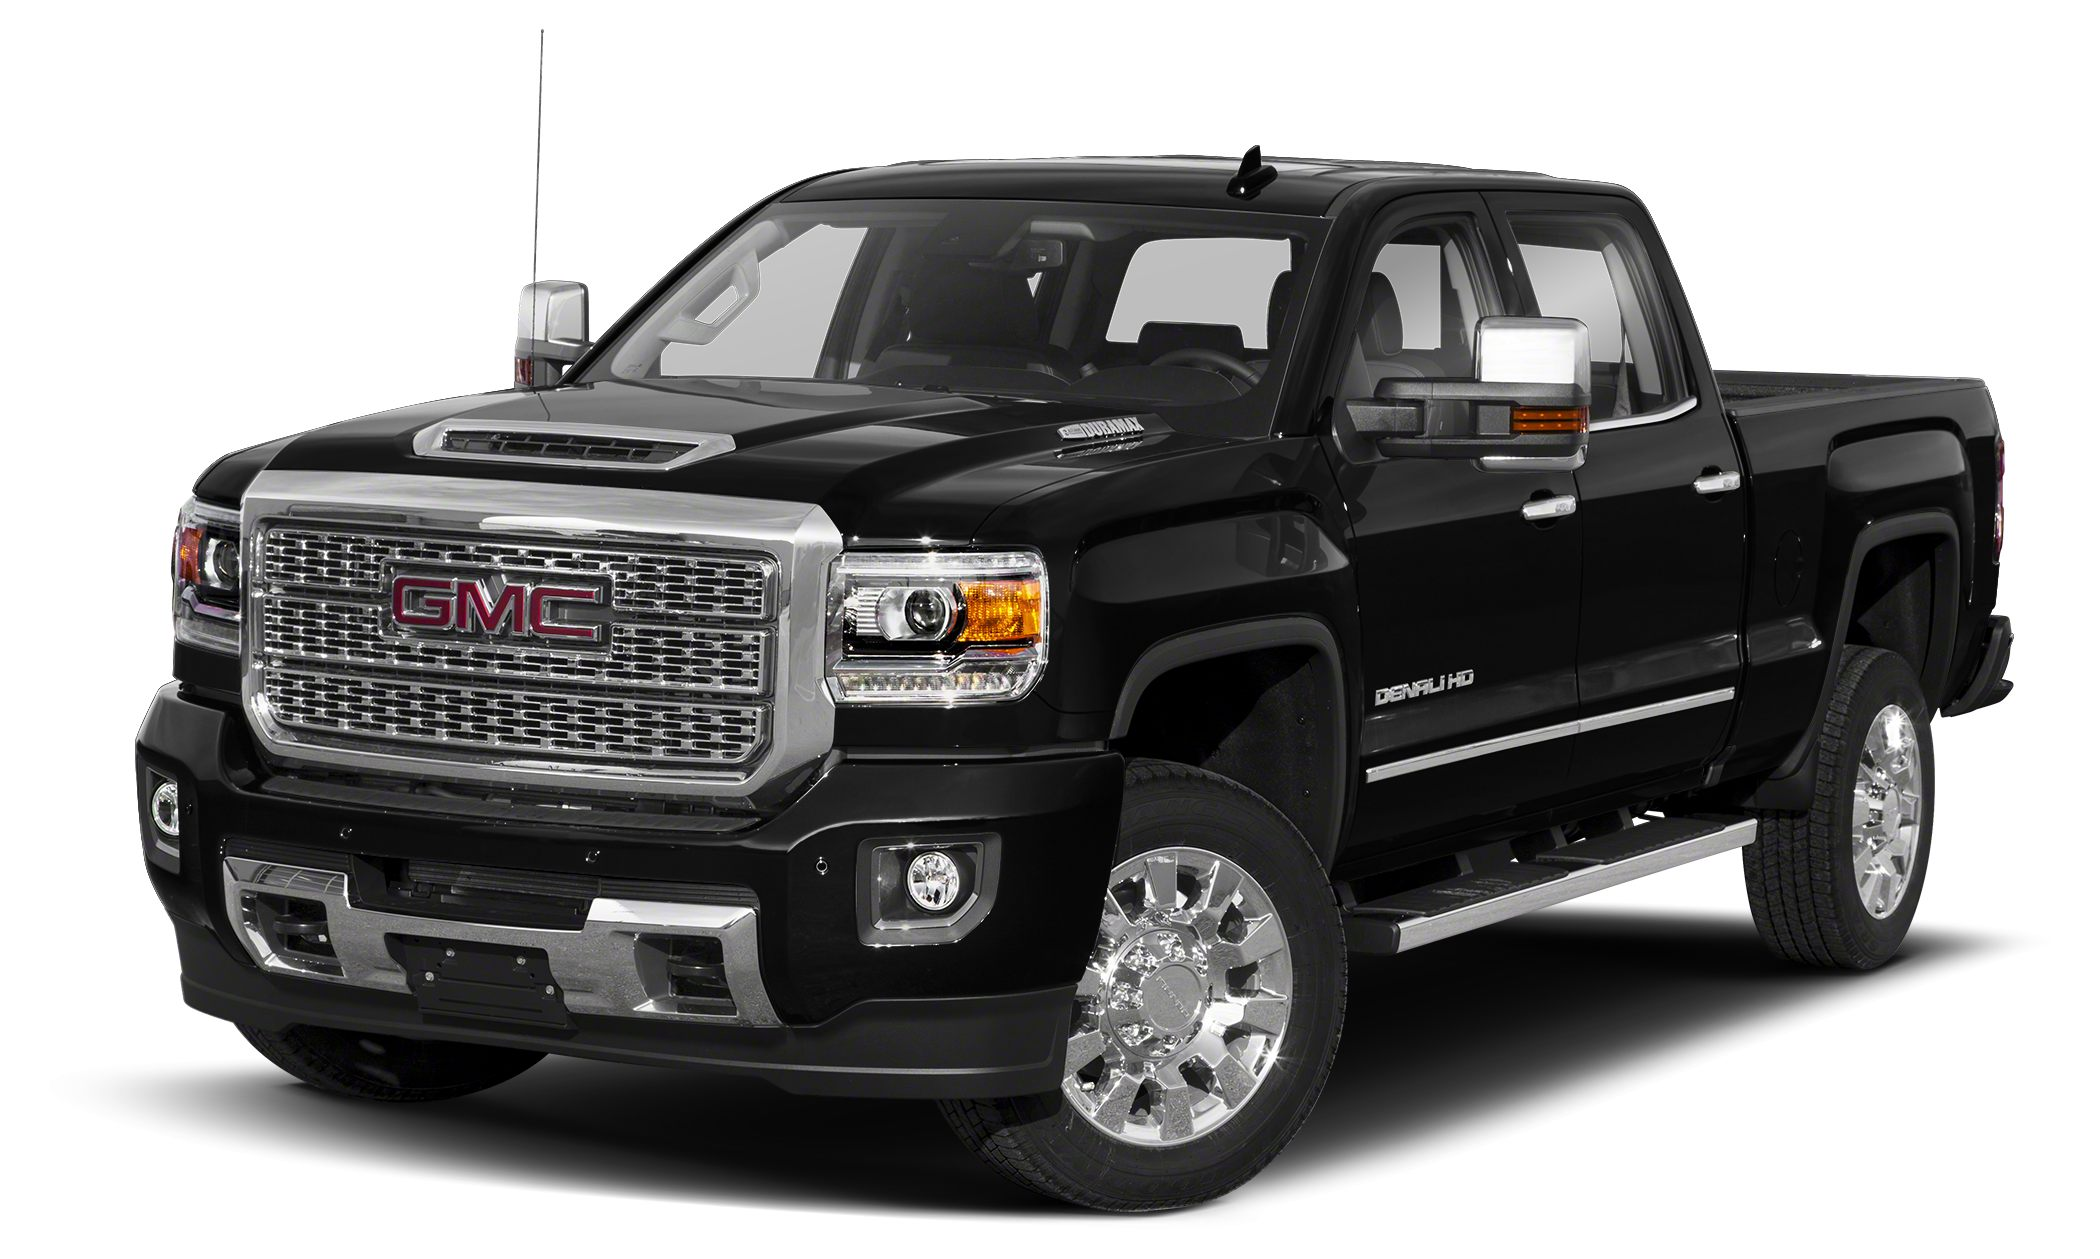 2018 GMC Sierra 2500HD Denali This 2018 GMC Sierra 2500HD Denali is a great option for folks looki